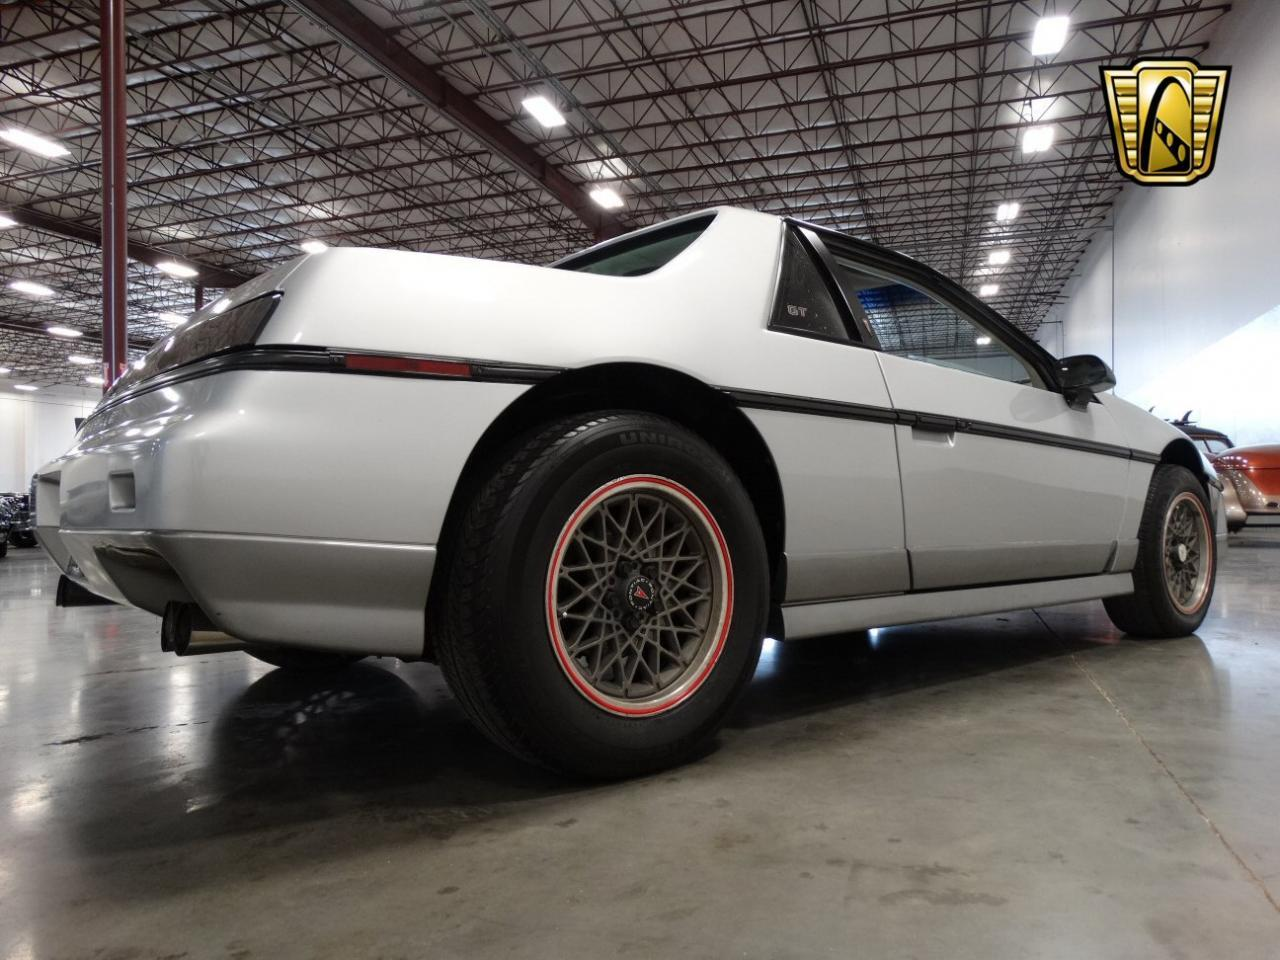 Large Picture of 1985 Pontiac Fiero located in La Vergne Tennessee - $6,995.00 Offered by Gateway Classic Cars - Nashville - KDWK